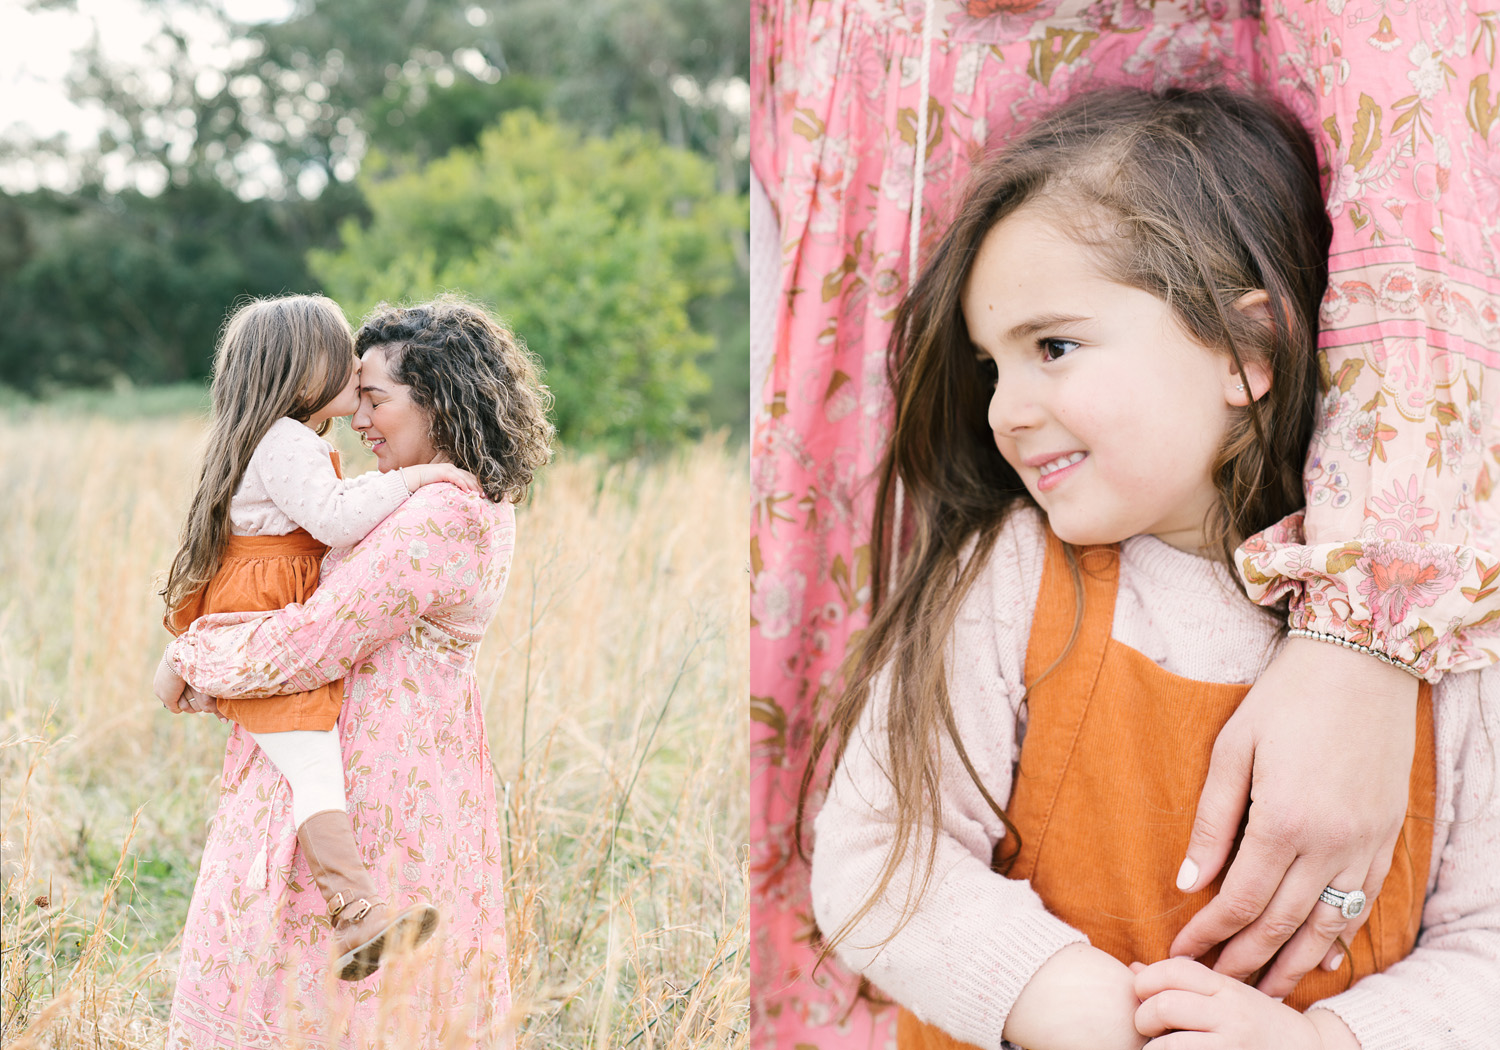 Two images side by side. First image of Mother holding young daughter in her arms, with daughter kissing mother on forehead, second image closeup of young girl with mothers hand resting on her gently, as photographed by Sutherland Shire Family Photographer Sevenish Photography